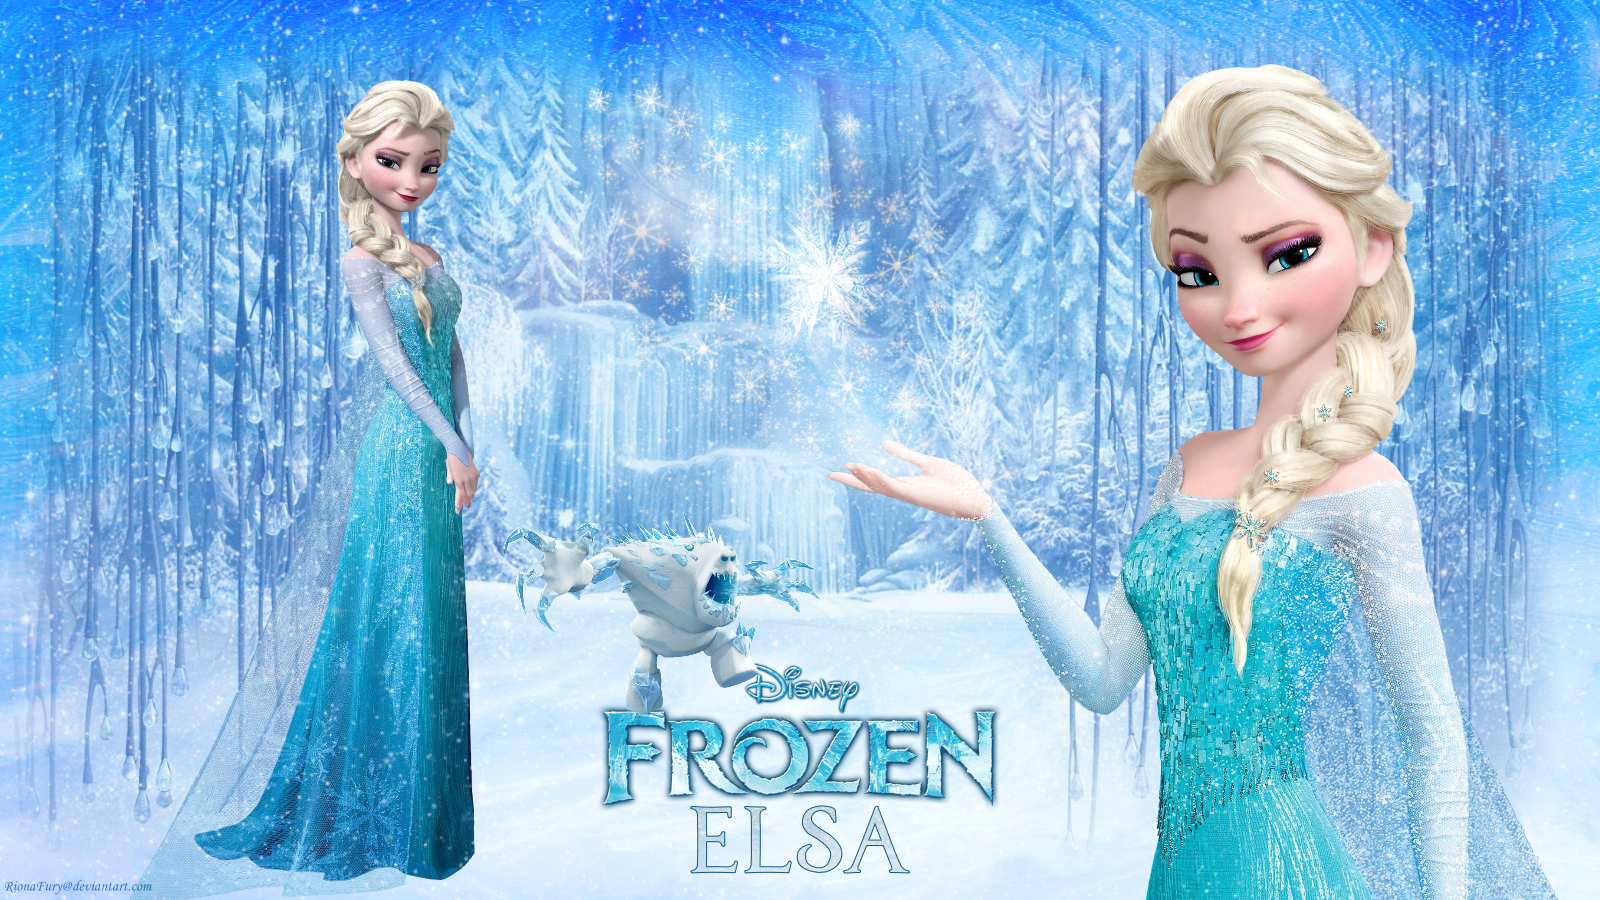 Princesses Disney Images La Reine Des Neiges Elsa Hd Fond D Ecran Disney Princess Wallpaper Frozen Wallpaper Disney Princess Images